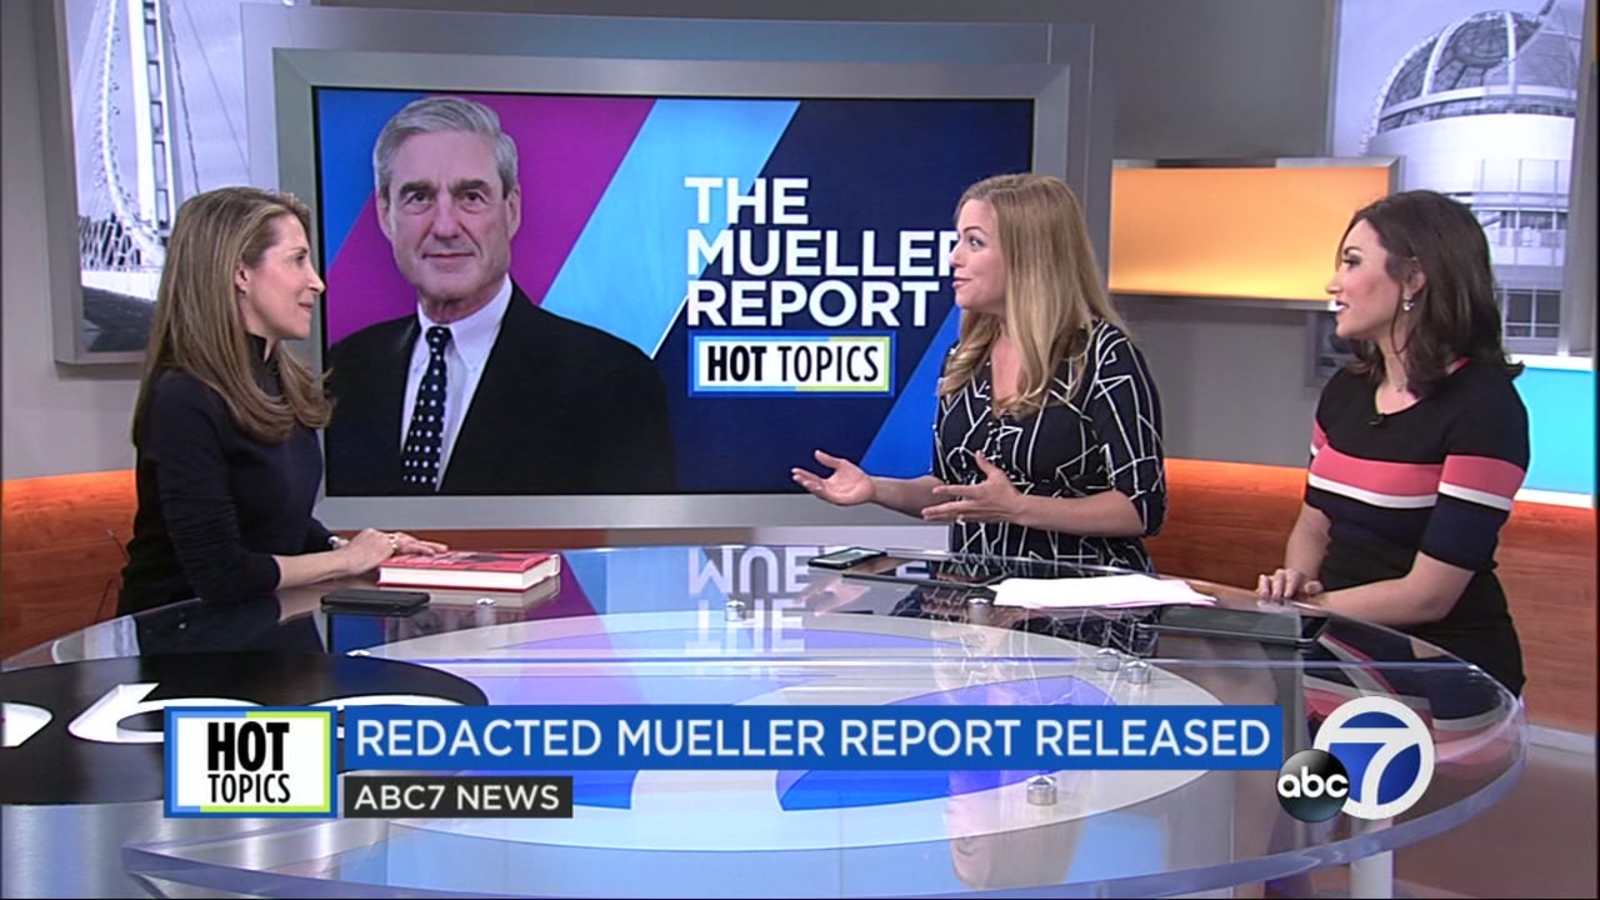 Veteran journalist Jessica Yellin dissects the Mueller Report on ABC7's Midday Live